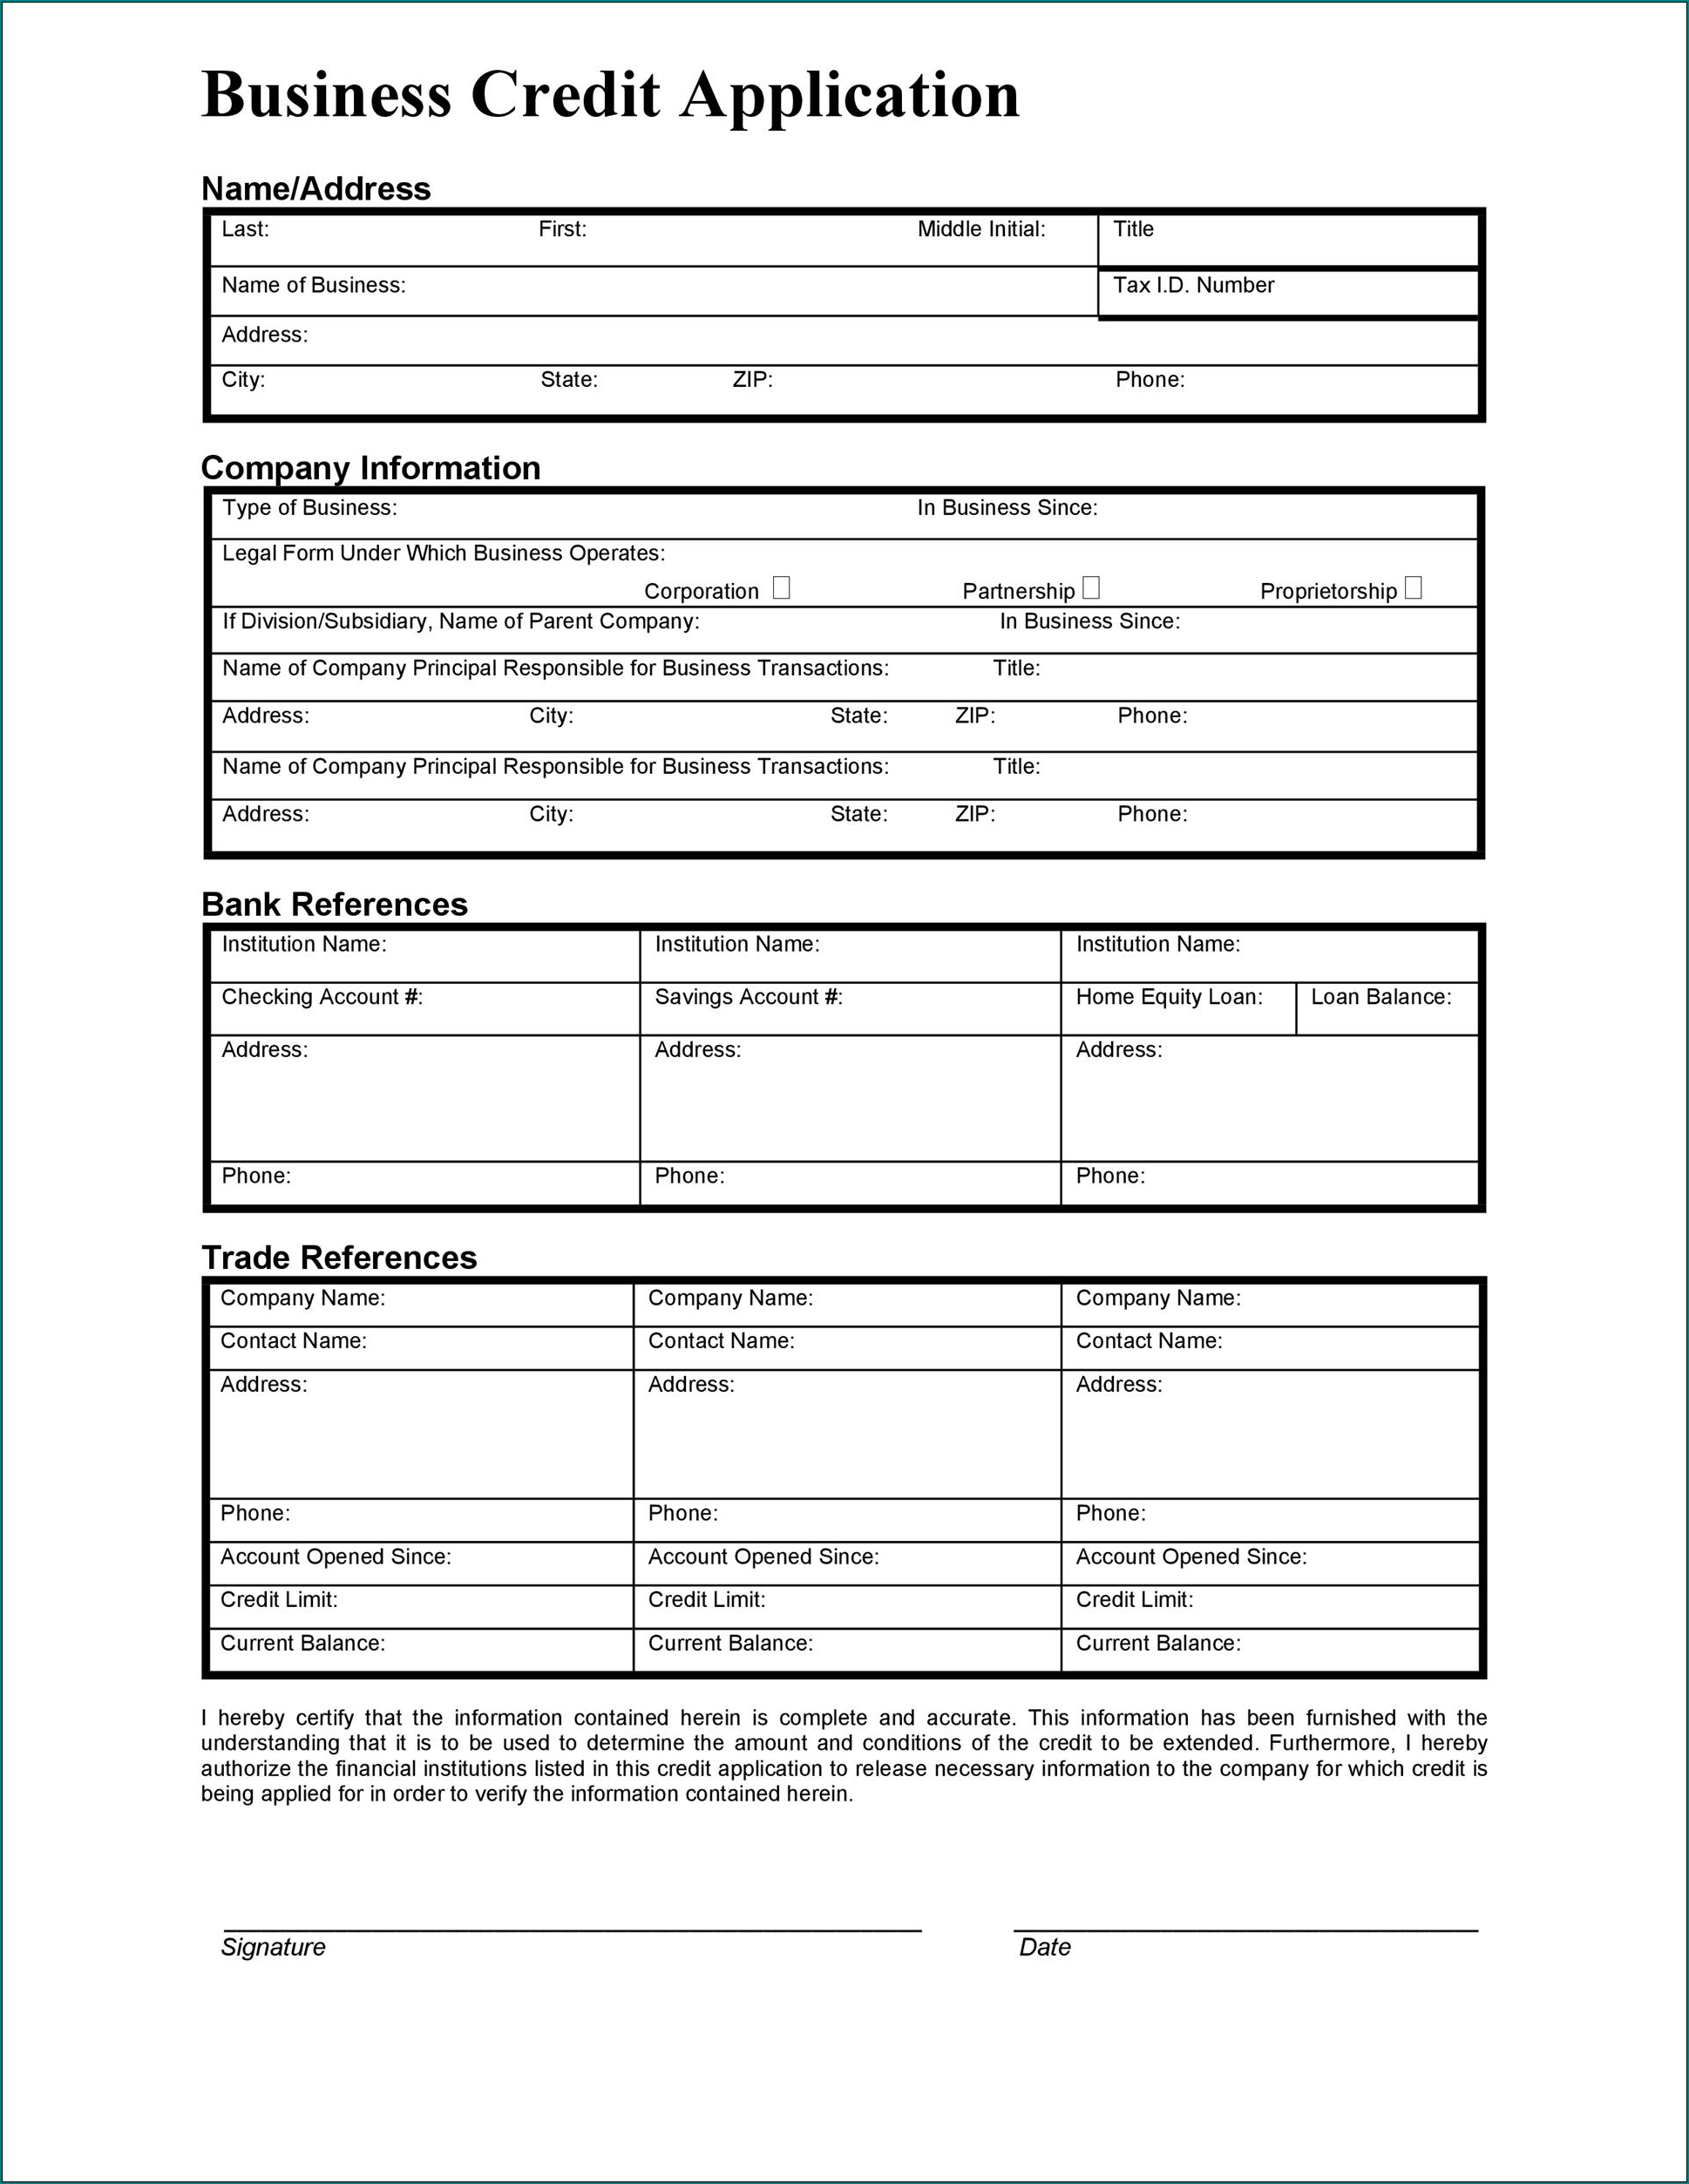 Sample of Business Credit Application Template